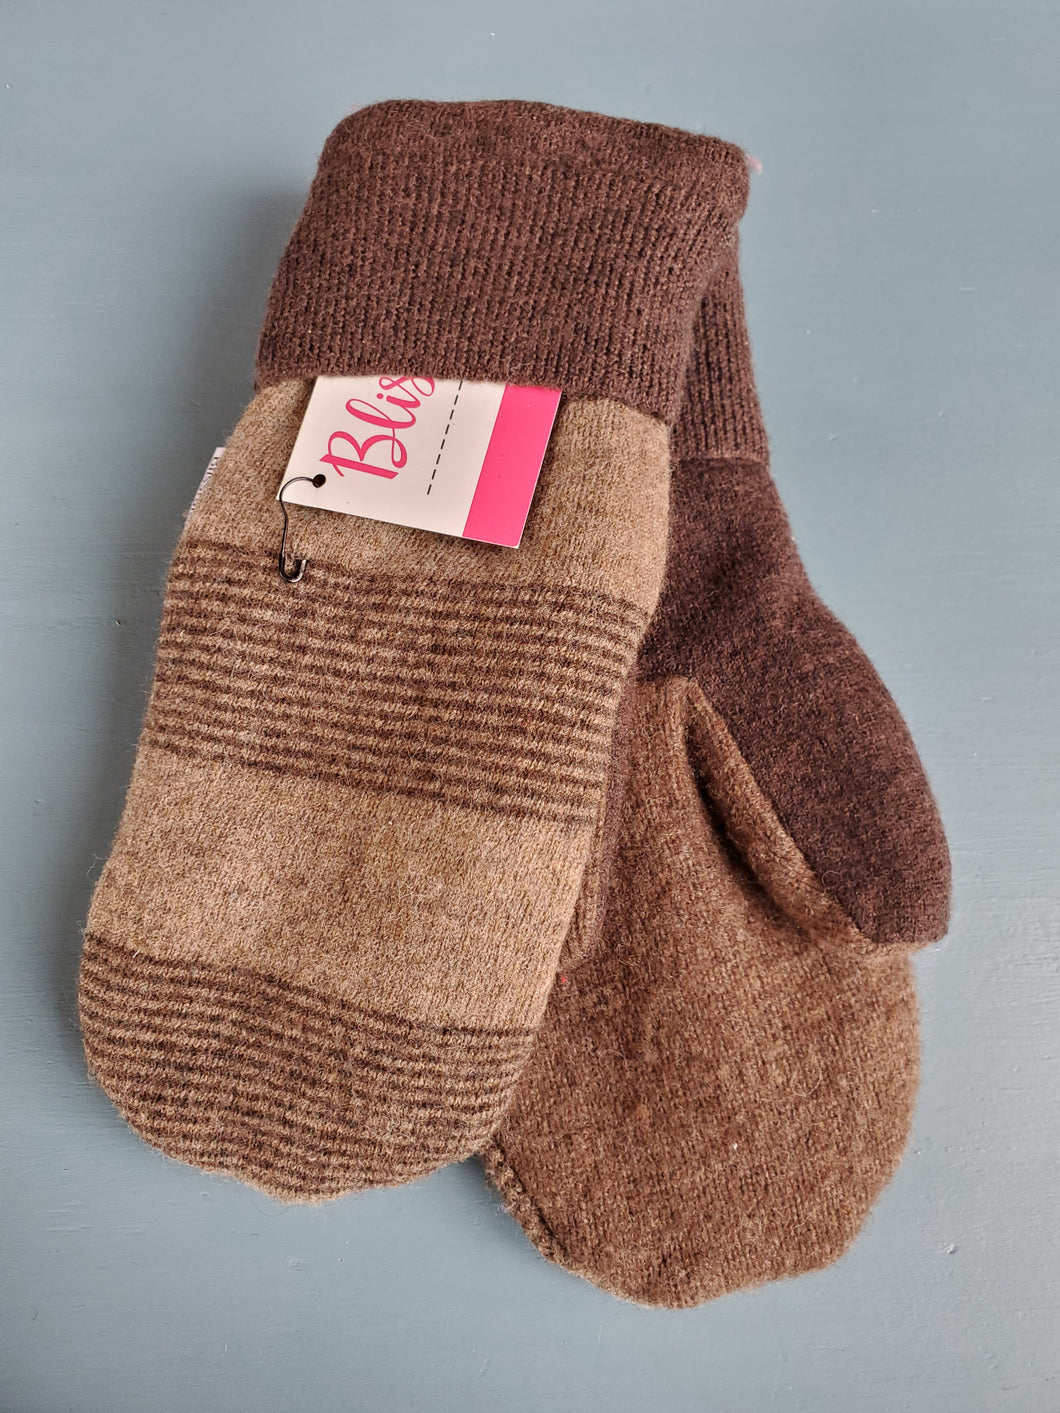 Wool Sweater Mittens - Chocolate Brown Stripes